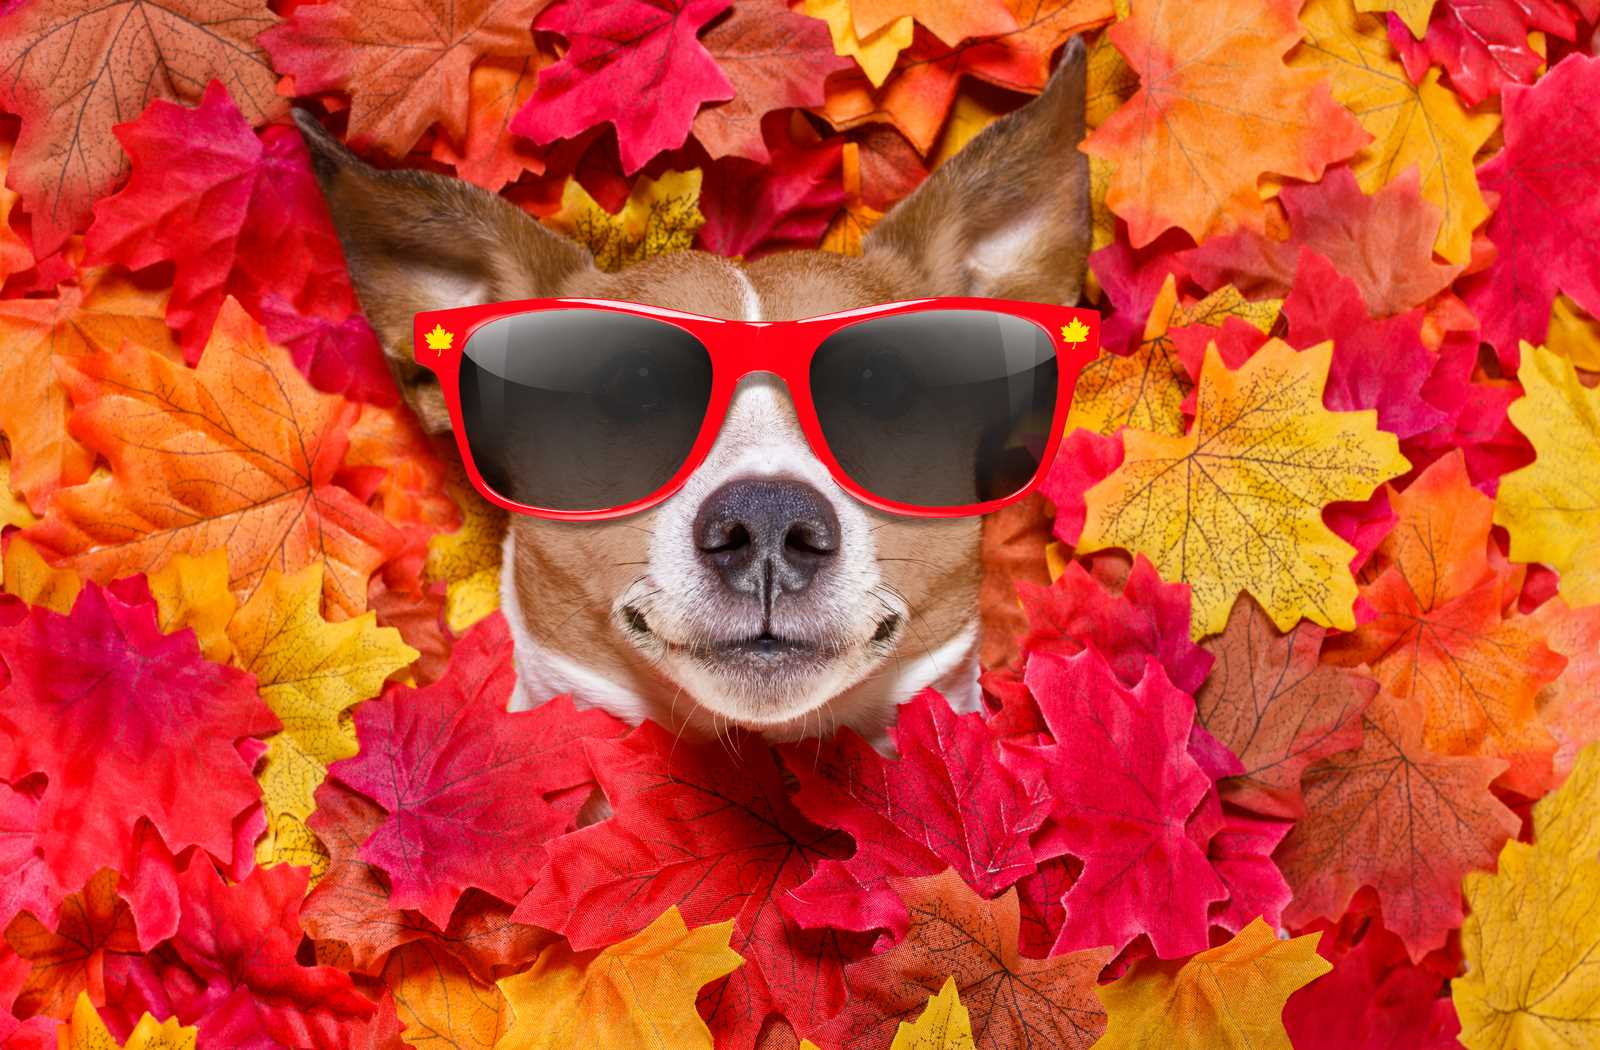 funny dog looking at you with red sunglasses on while buried in maple leaves